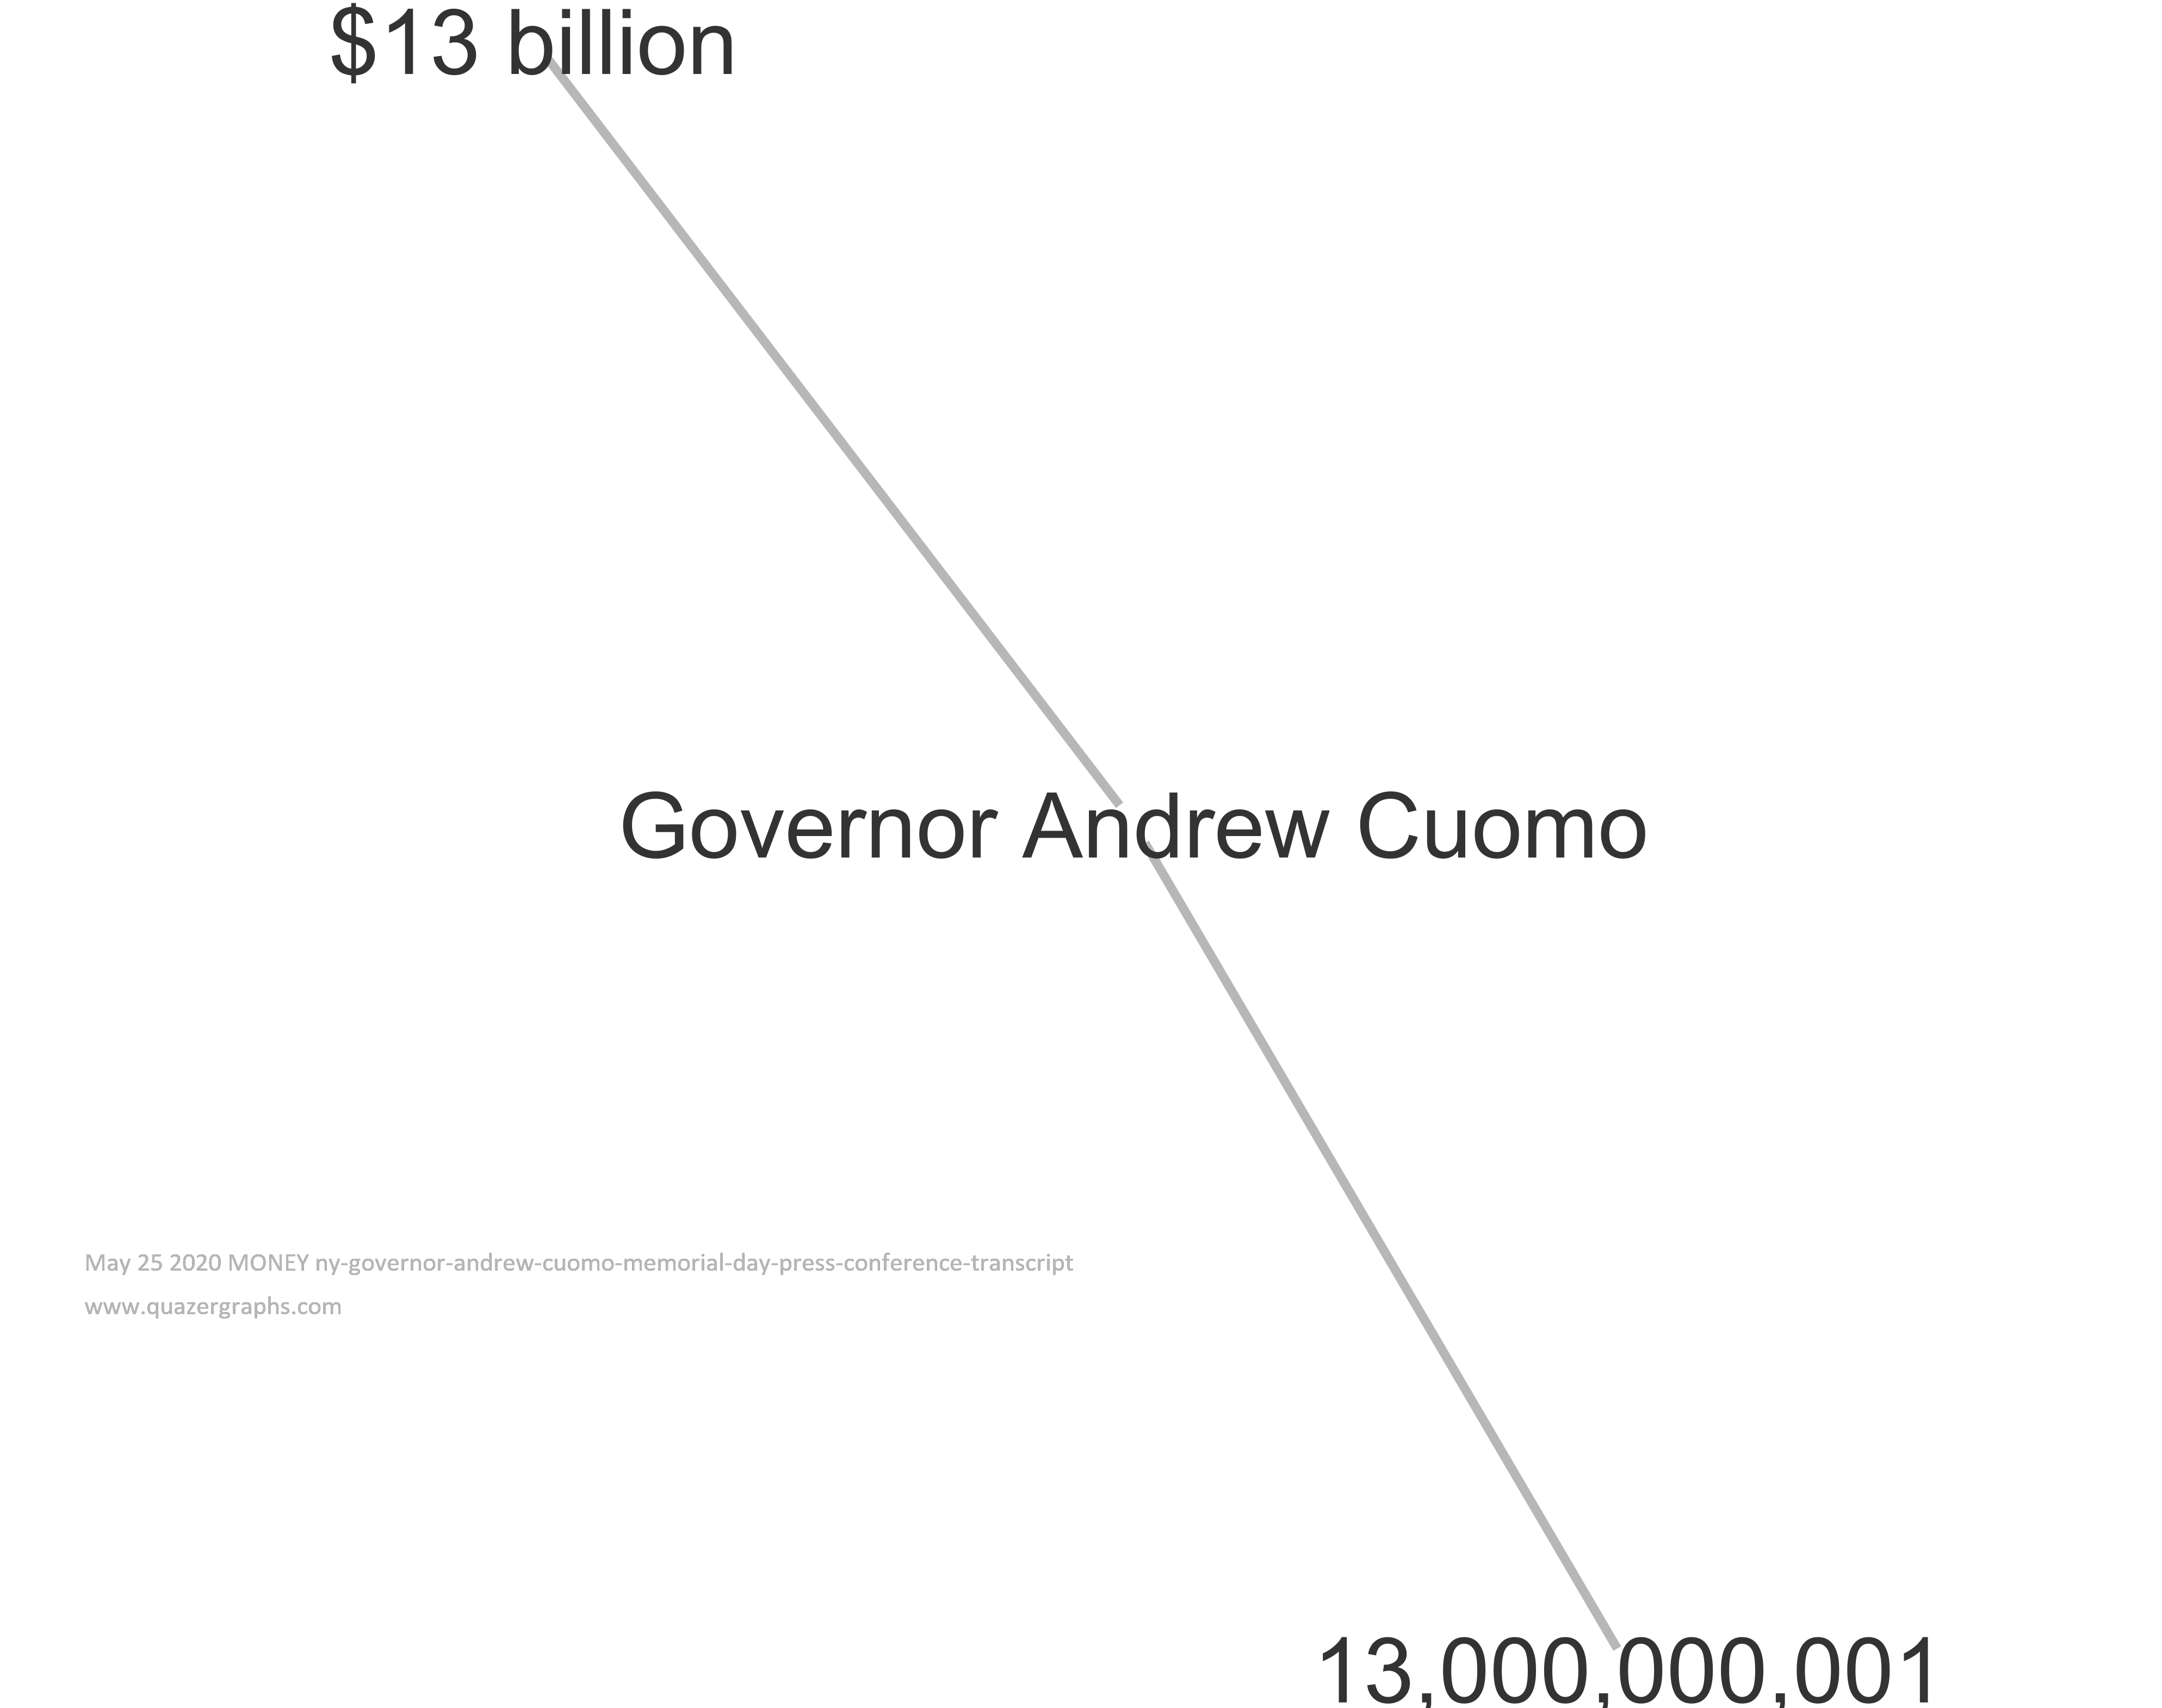 May 25 2020 MONEY ny-governor-andrew-cuomo-memorial-day-press-conference-transcript